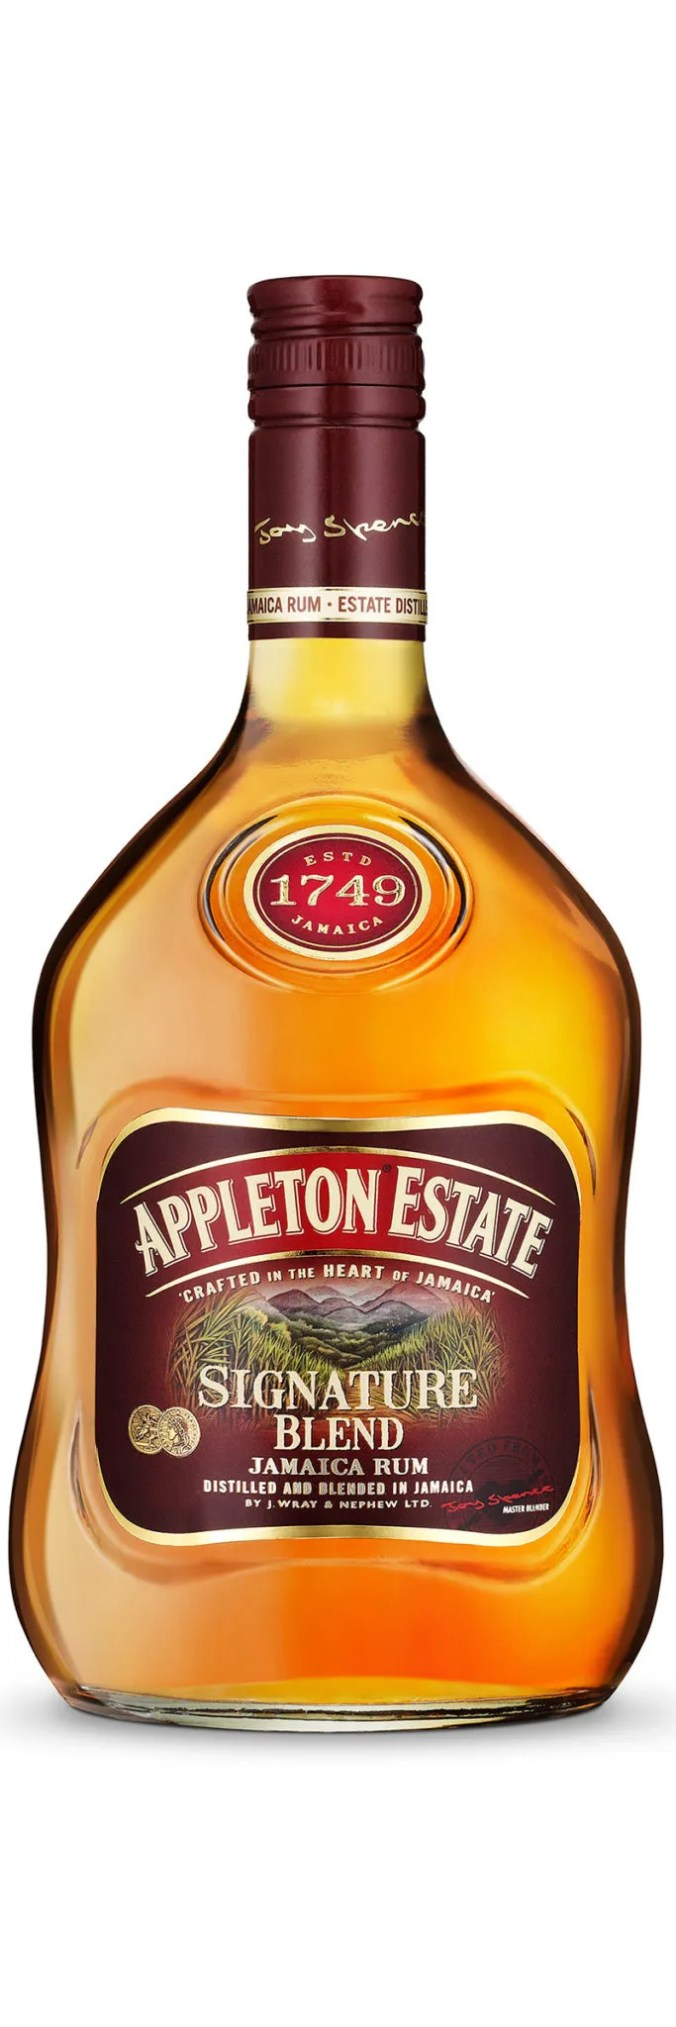 Appleton Estate Signature Blend Image